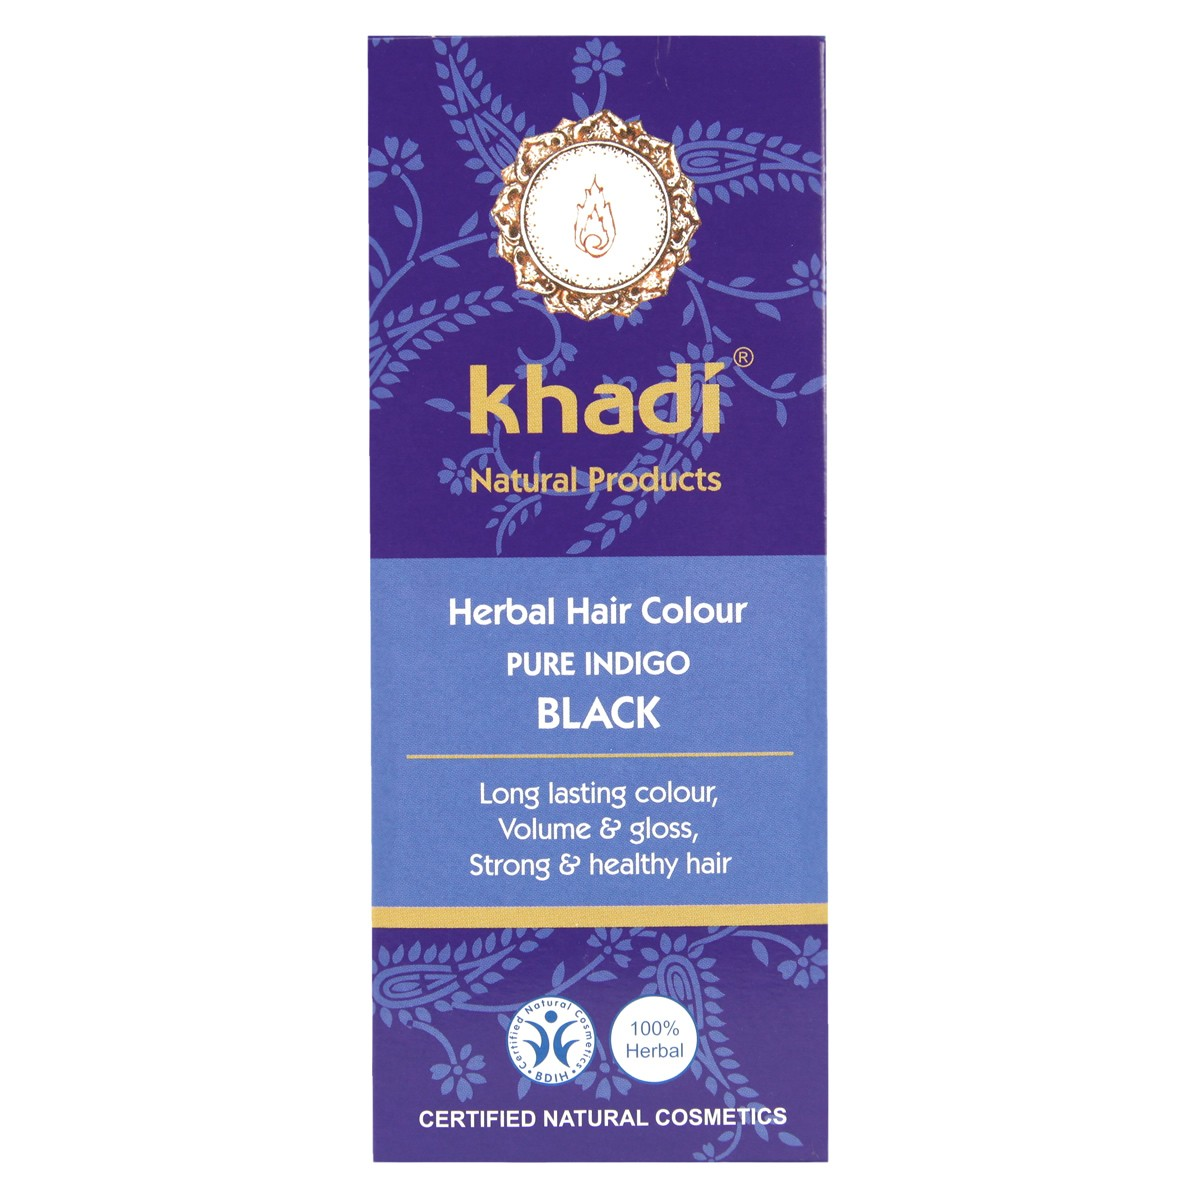 Khadi Herbal Hair Colour - Pure Indigo Black